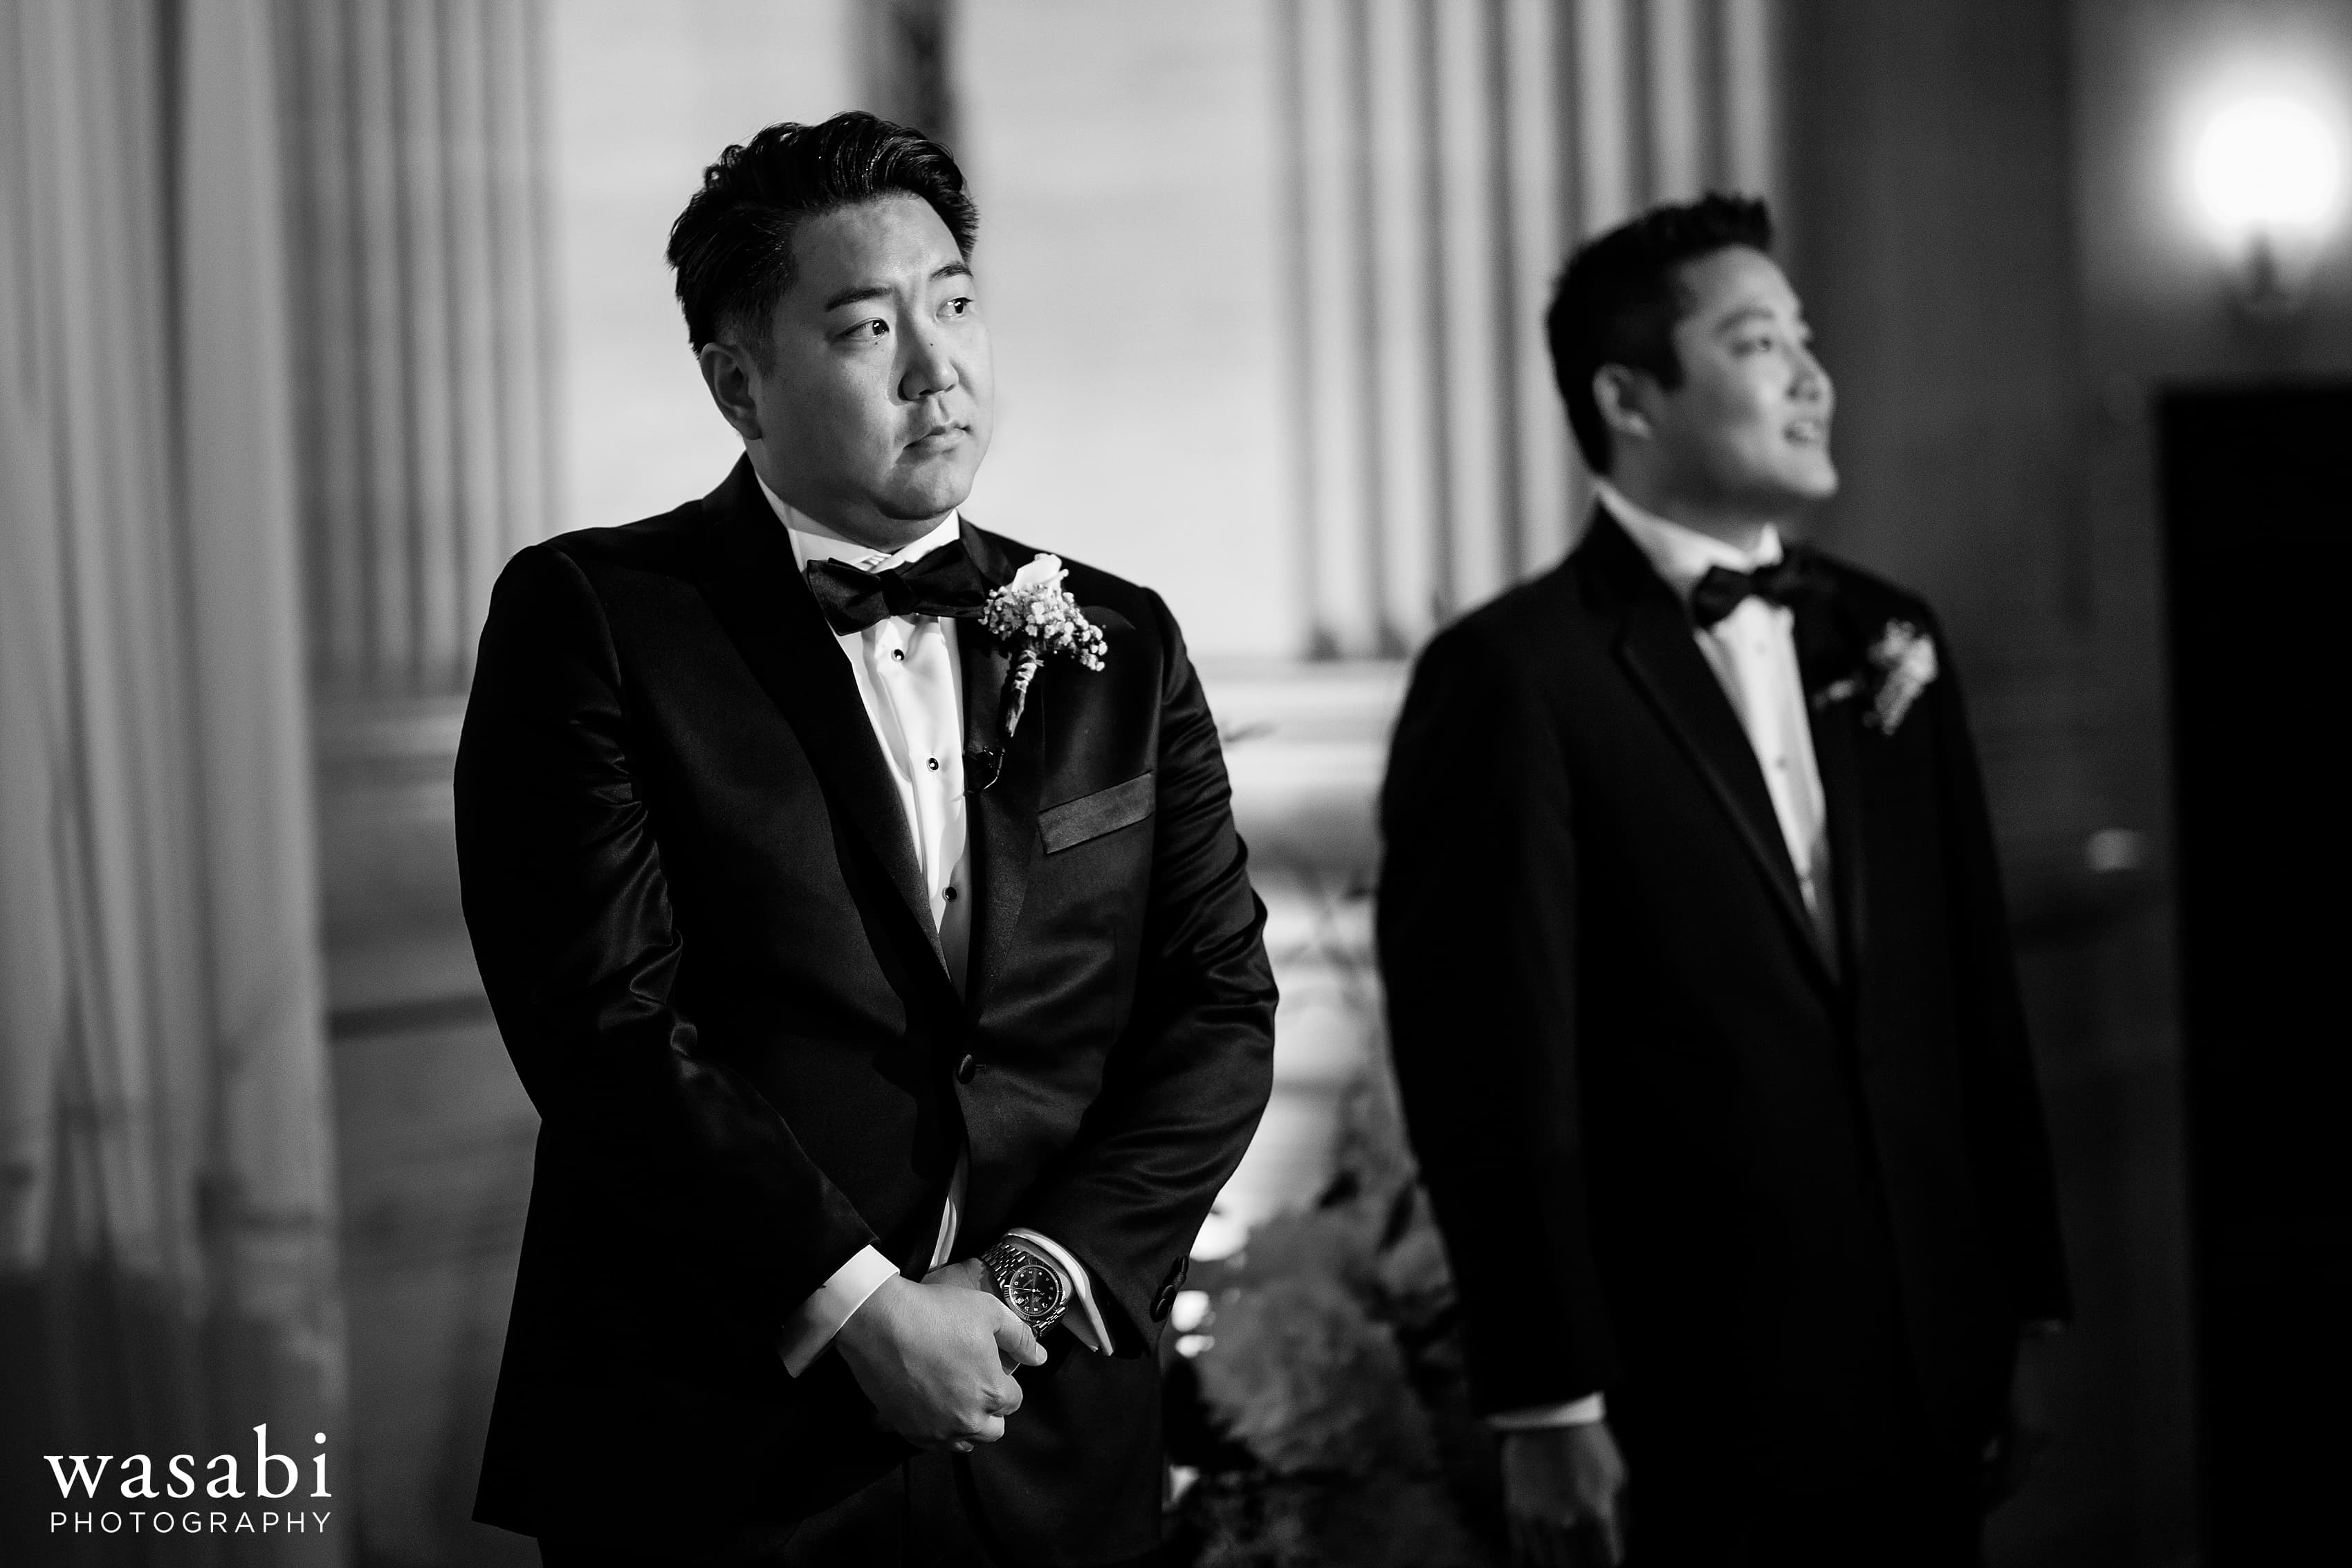 Groom watches while bride walks down the aisle during wedding at Civic Opera House in Chicago